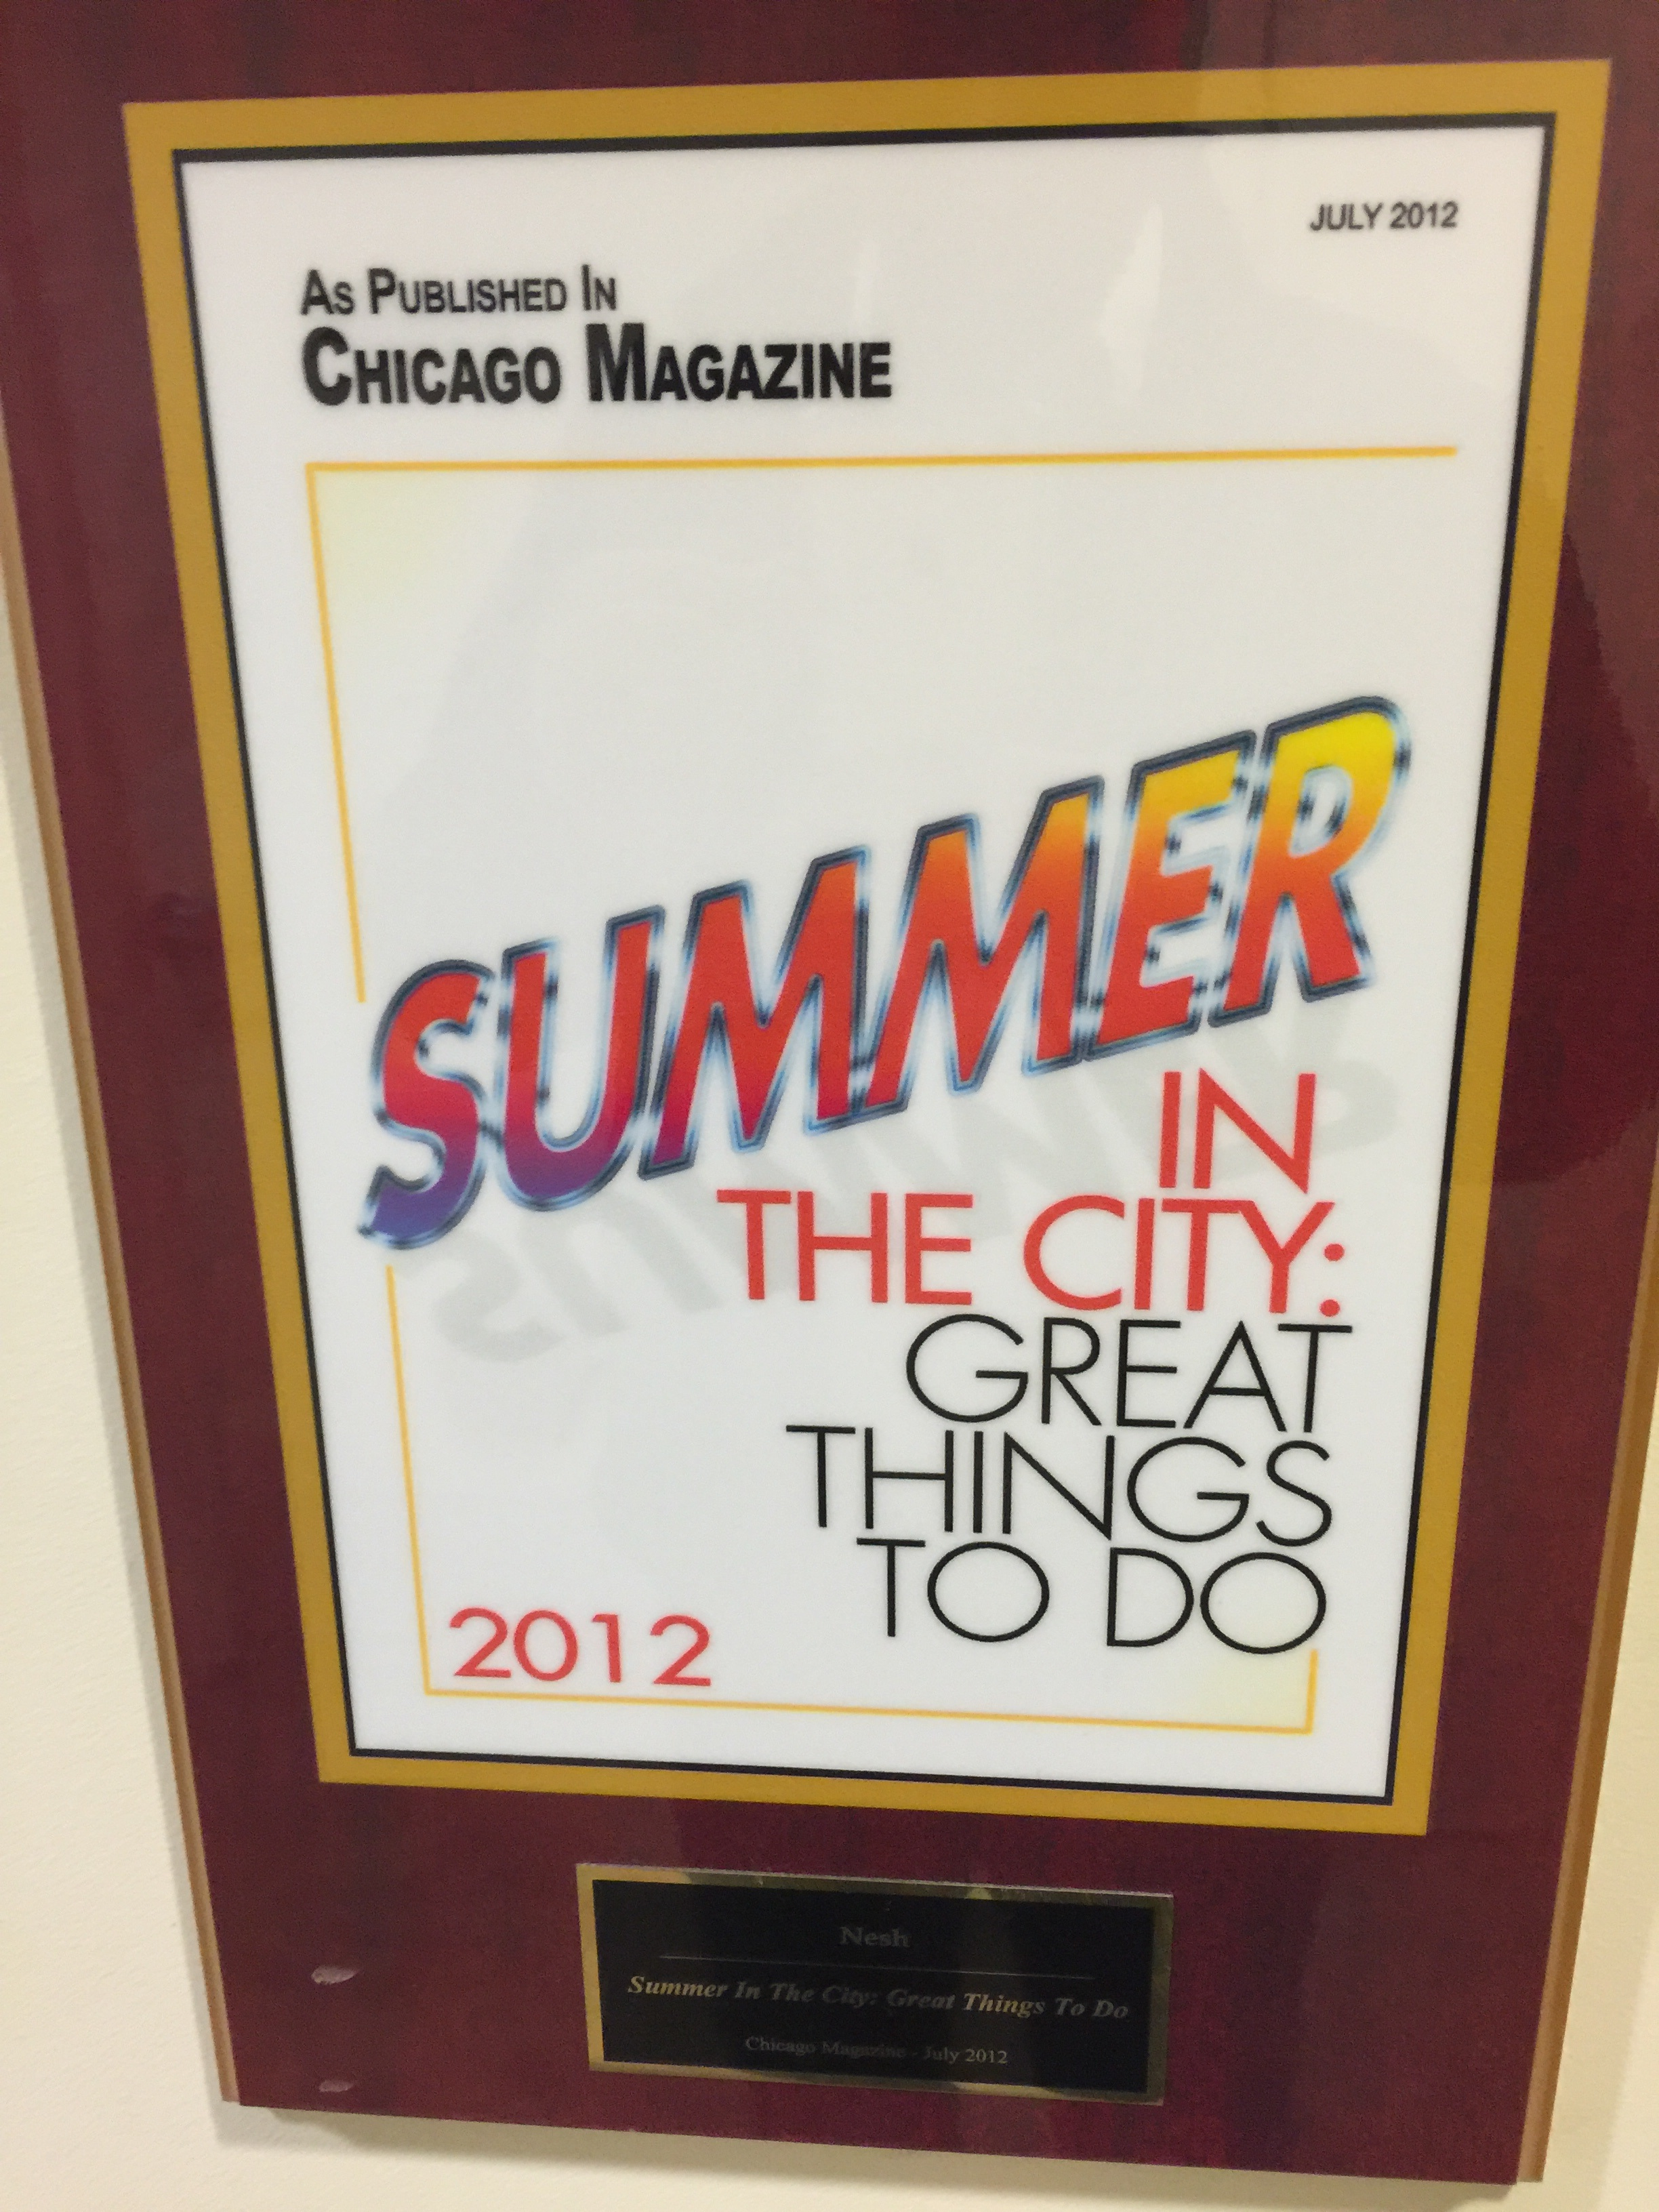 As published in Chicago Magazine